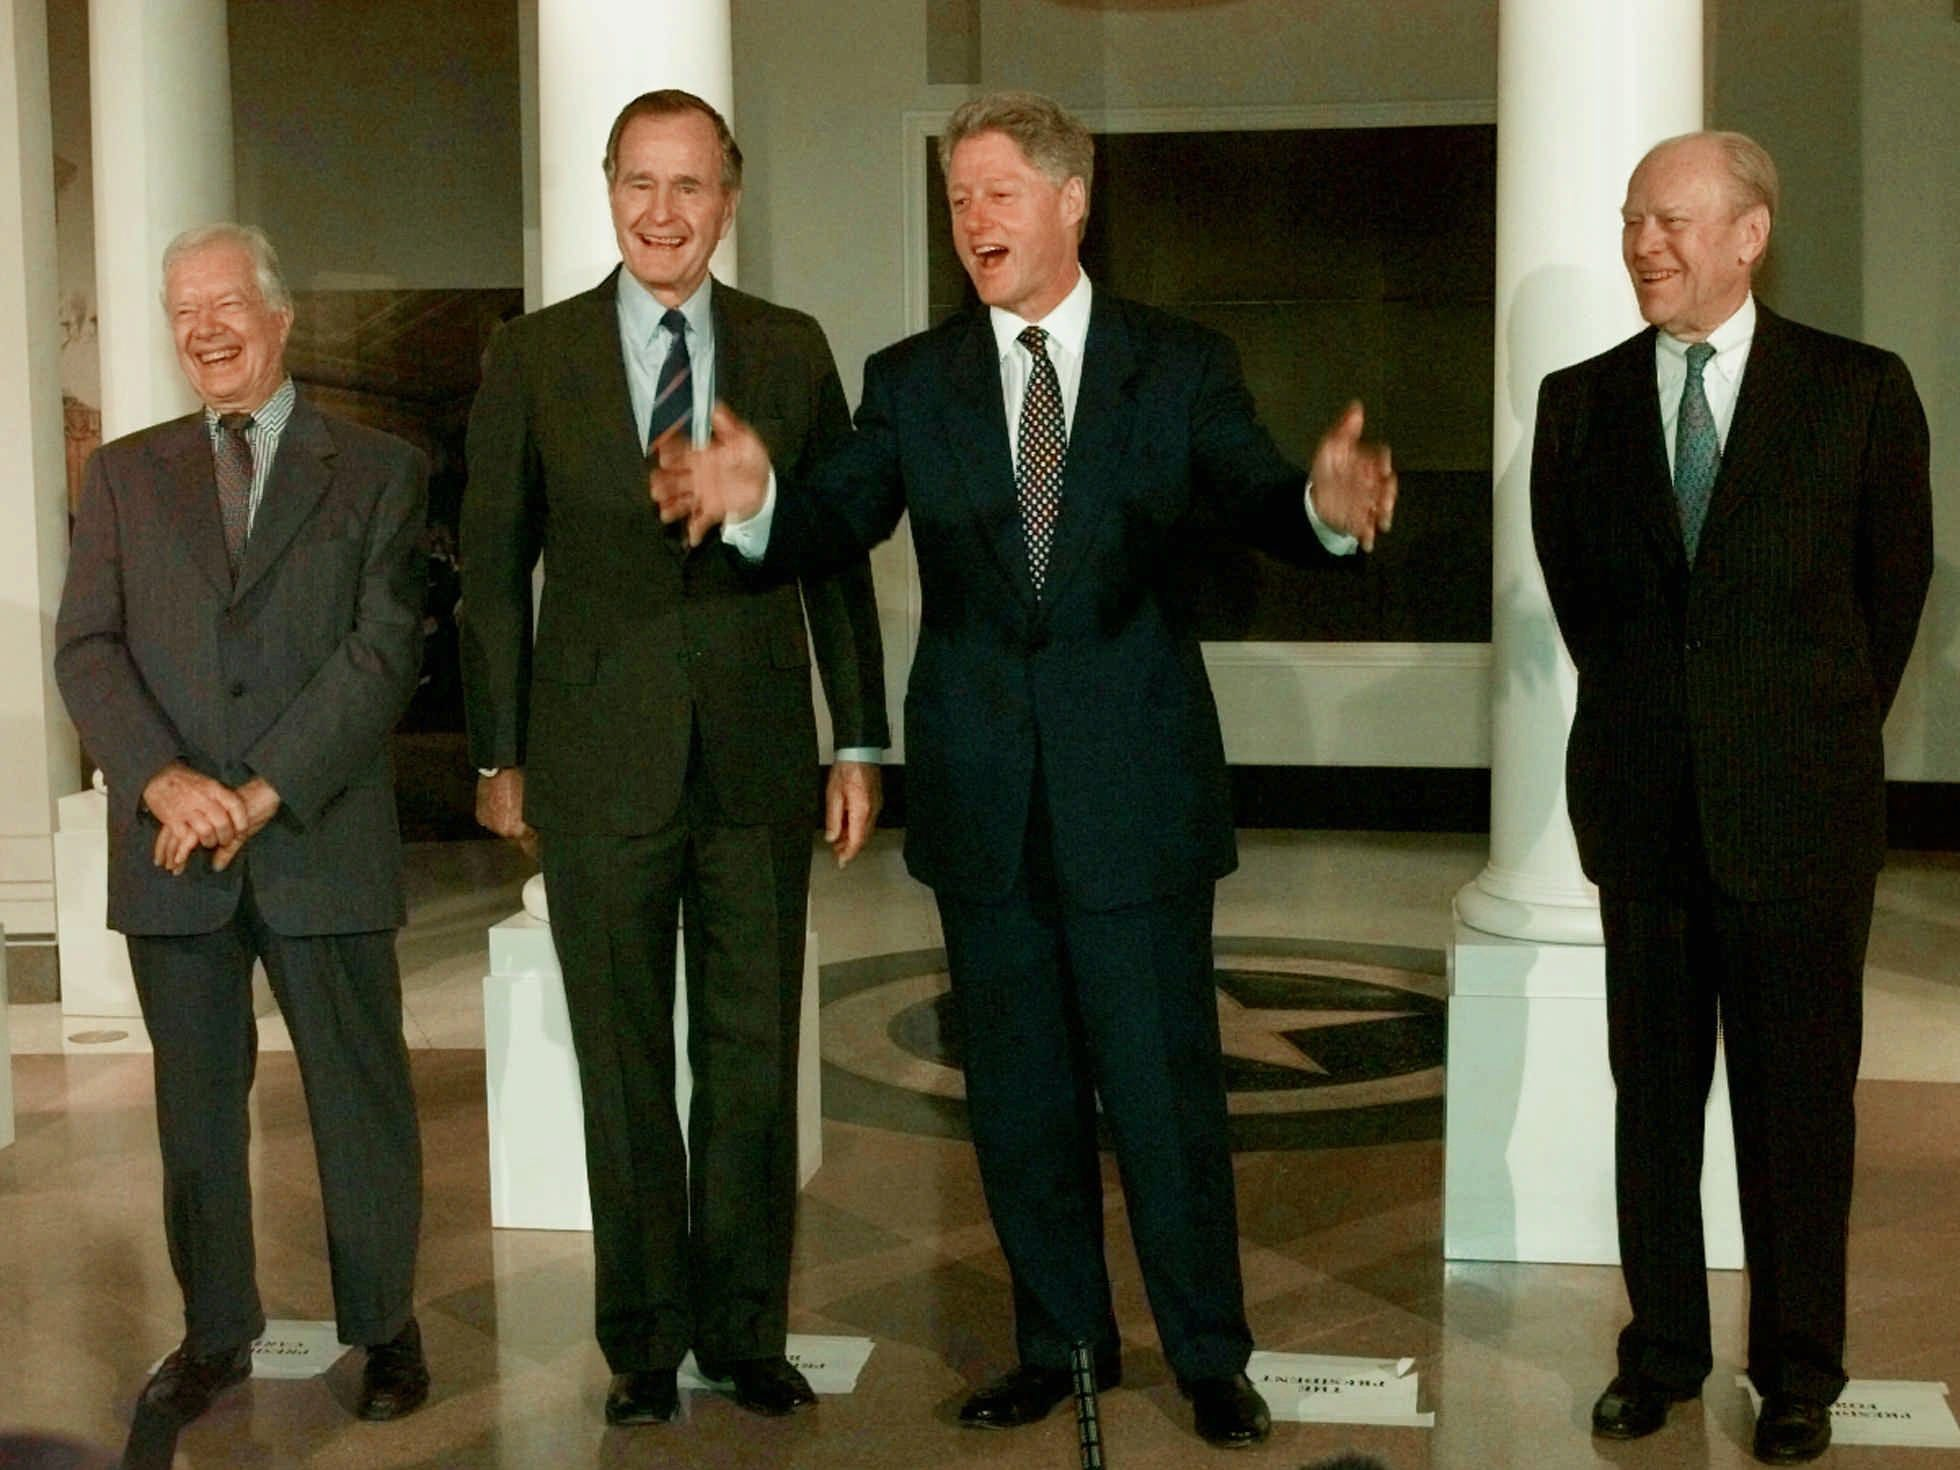 Former Presidents Jimmy Carter, left, George H.W. Bush, and Gerald Ford, right, laugh as President Clinton speaks during a photo session in front of a replica of the White House at the George Bush Presidential Library in College Station, Texas, Thursday, Nov. 6, 1997, prior to the library dedication ceremonies.